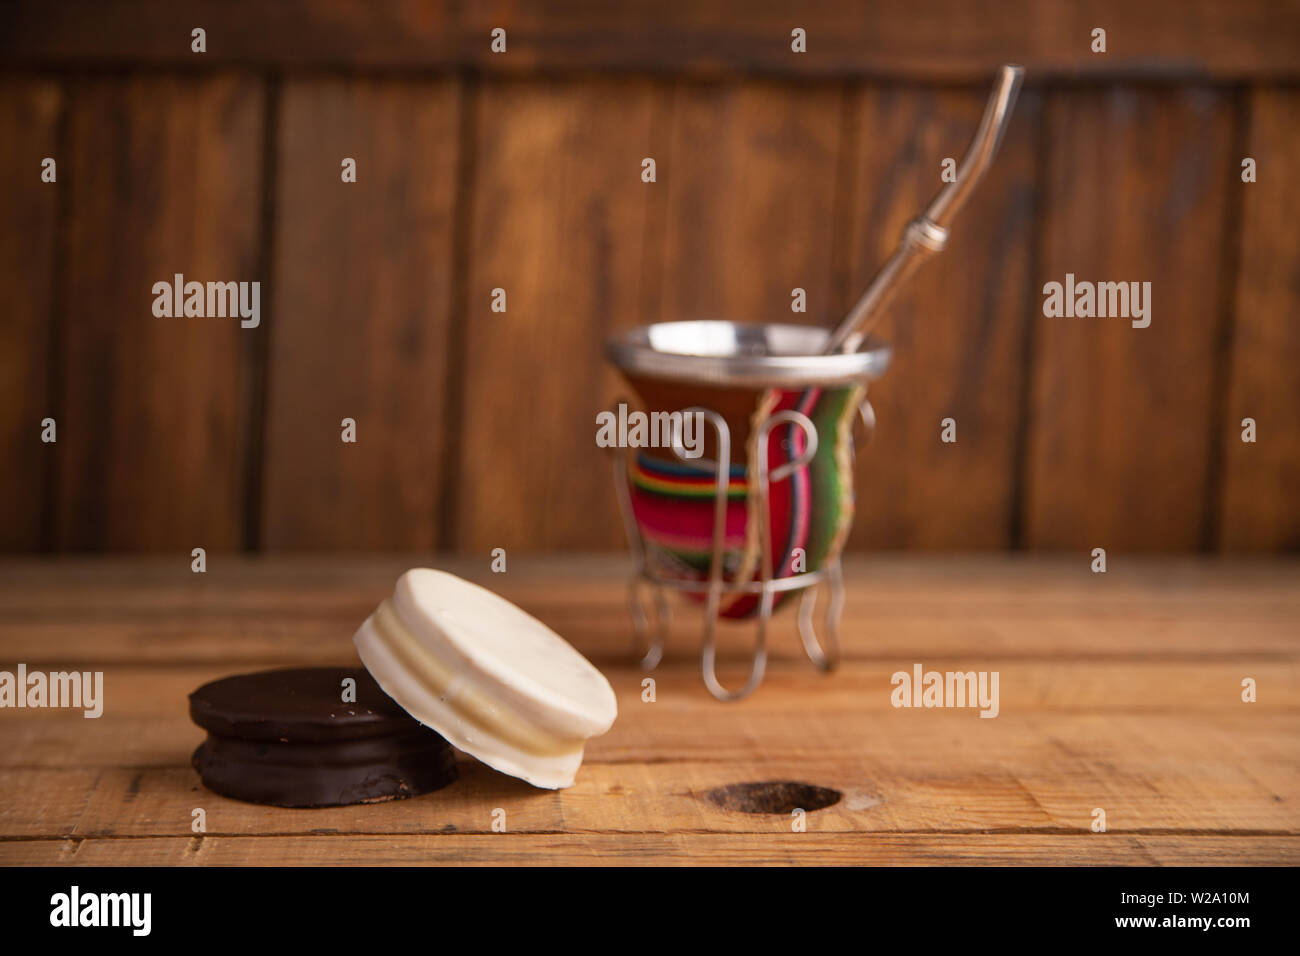 The alfajores are Argentine chocolate cakes and dcaramel - Stock Image